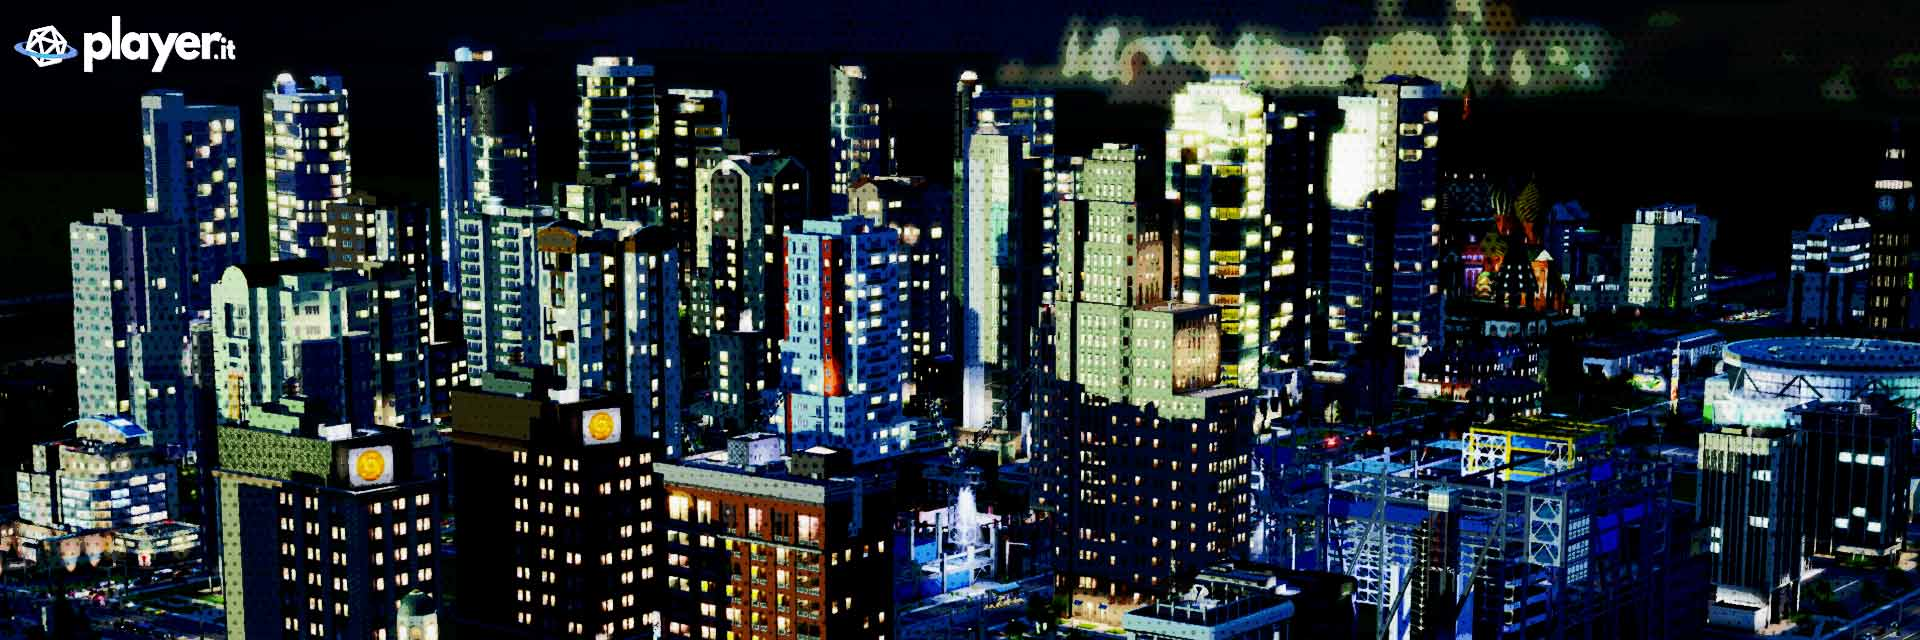 simcity wallpaper in hd